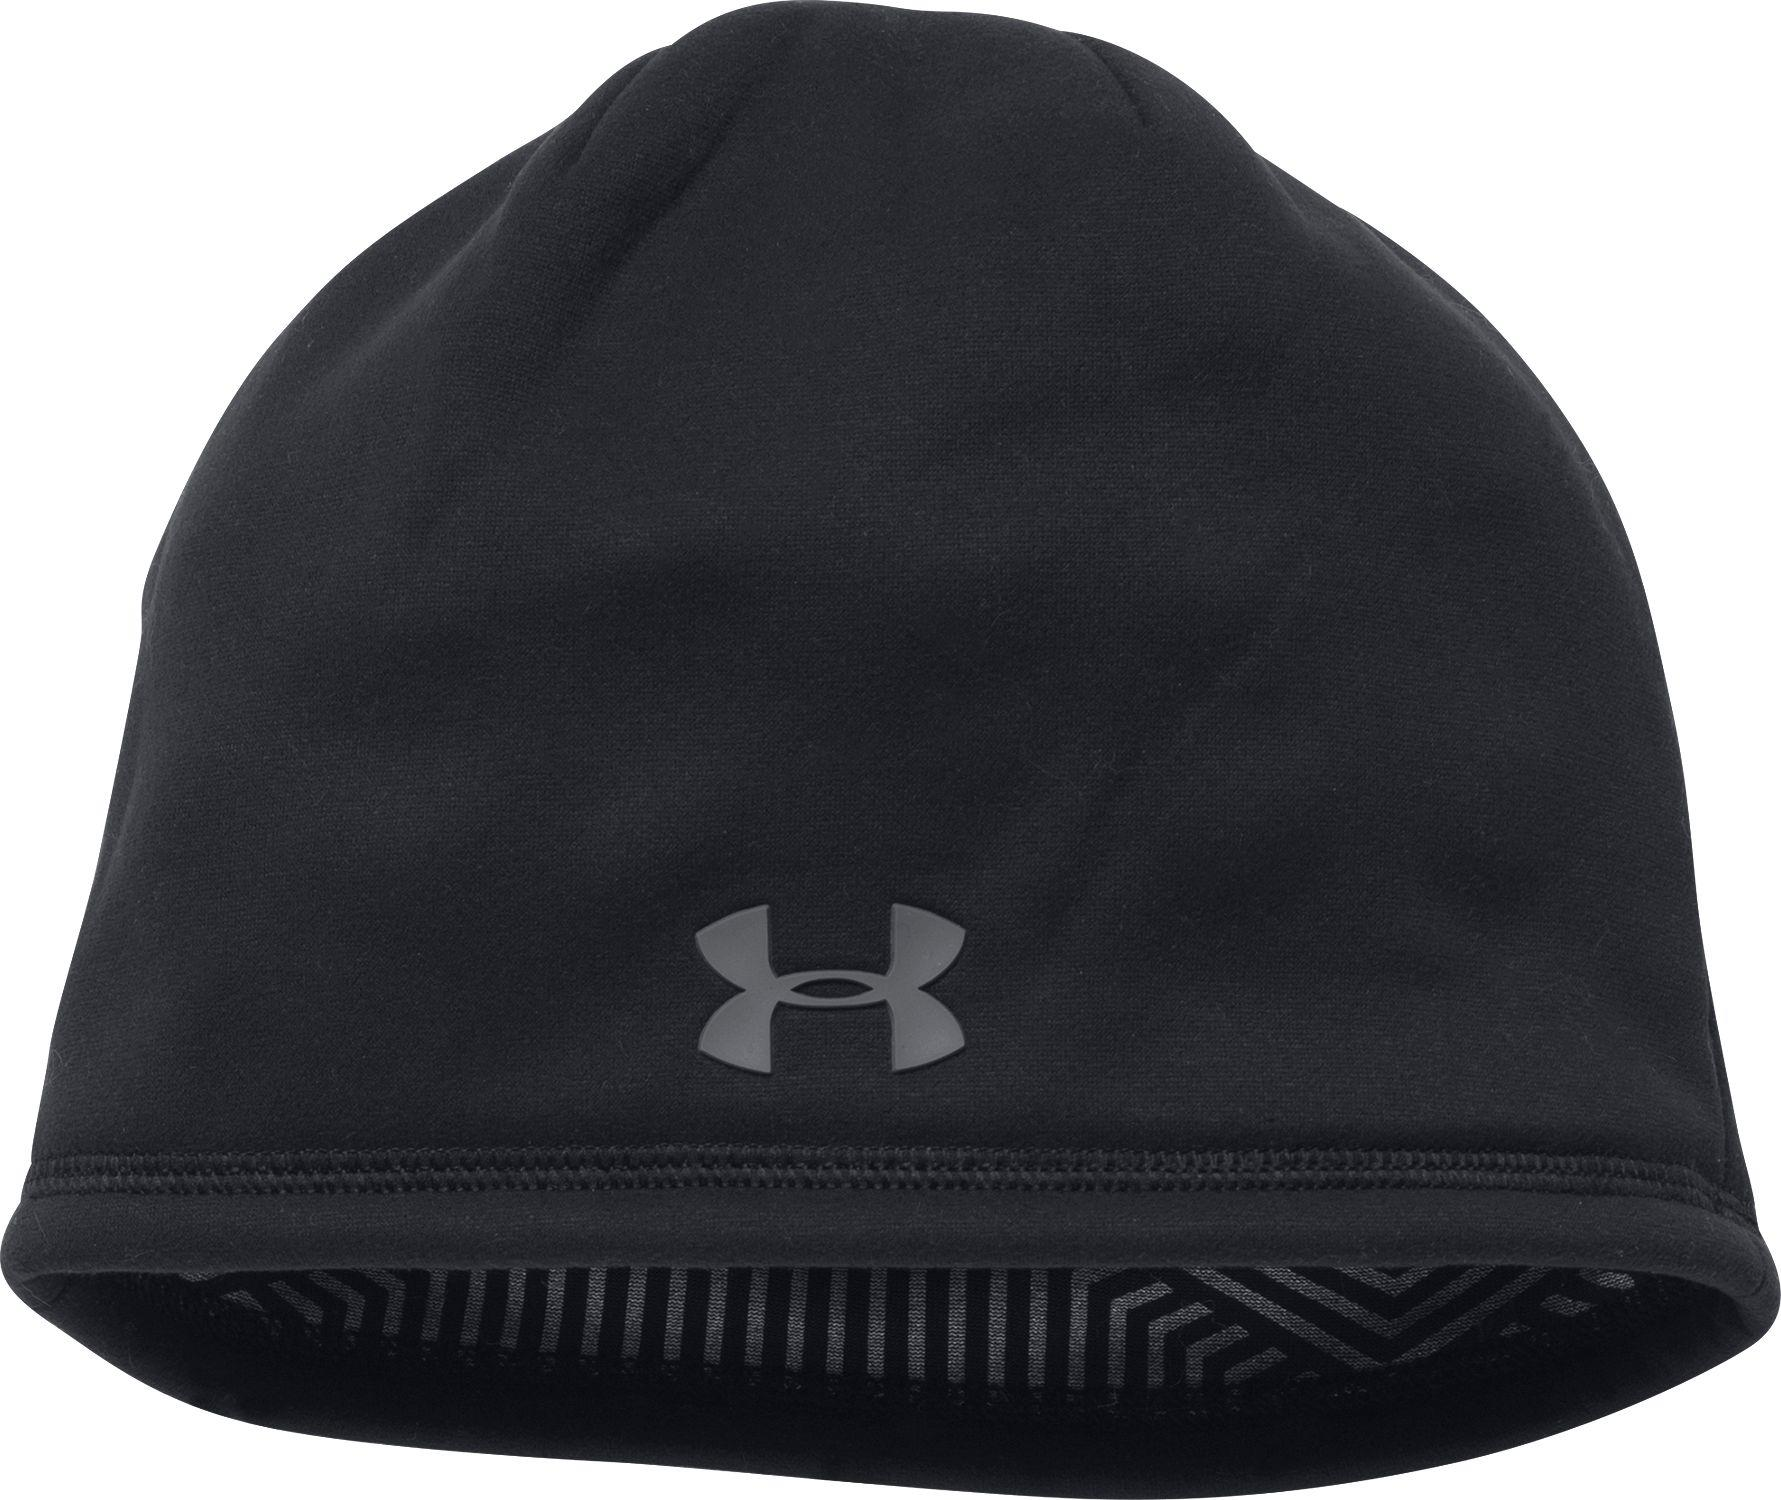 5feda920293 Under Armour - Black Coldgear Infrared Elements Storm 2.0 Beanie for Men -  Lyst